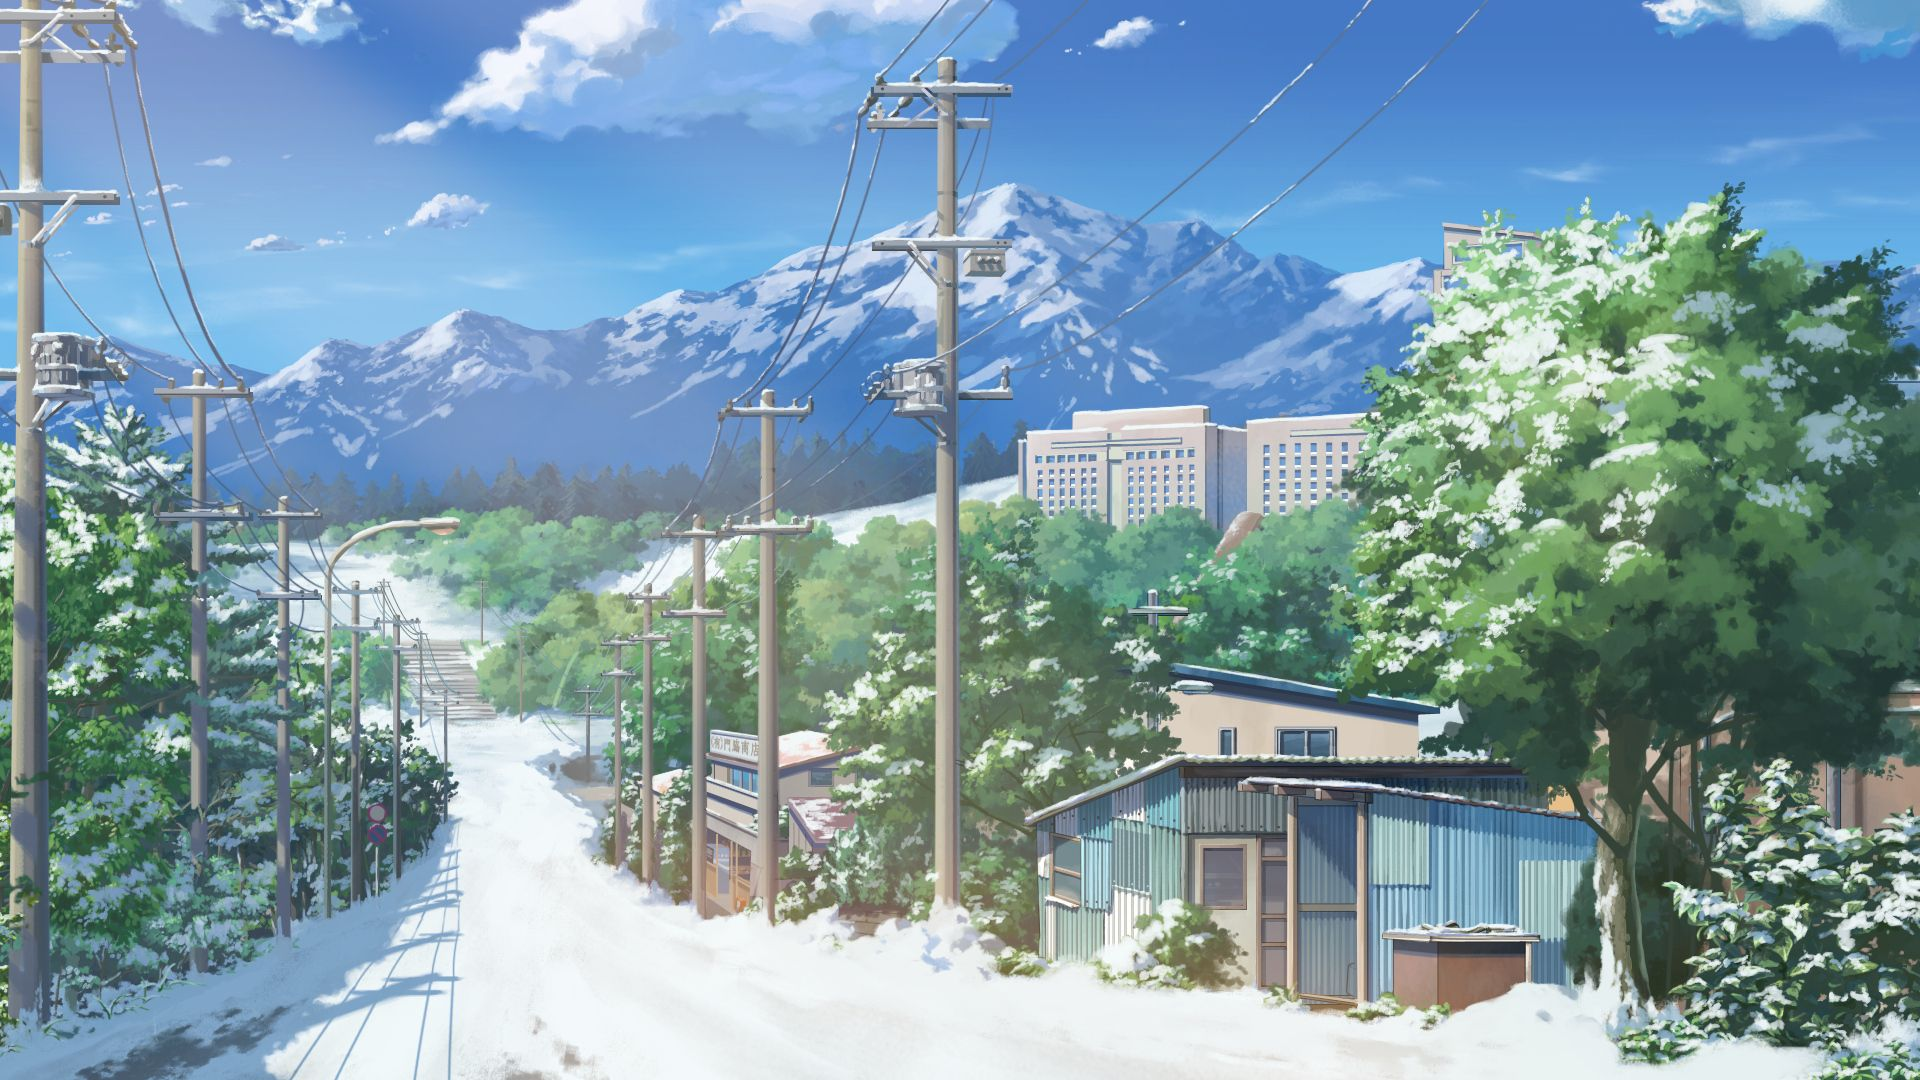 Anime Japan Cityscape Wallpaper Cenario Anime Wallpaper Paisagem Wallpapers Bonitos